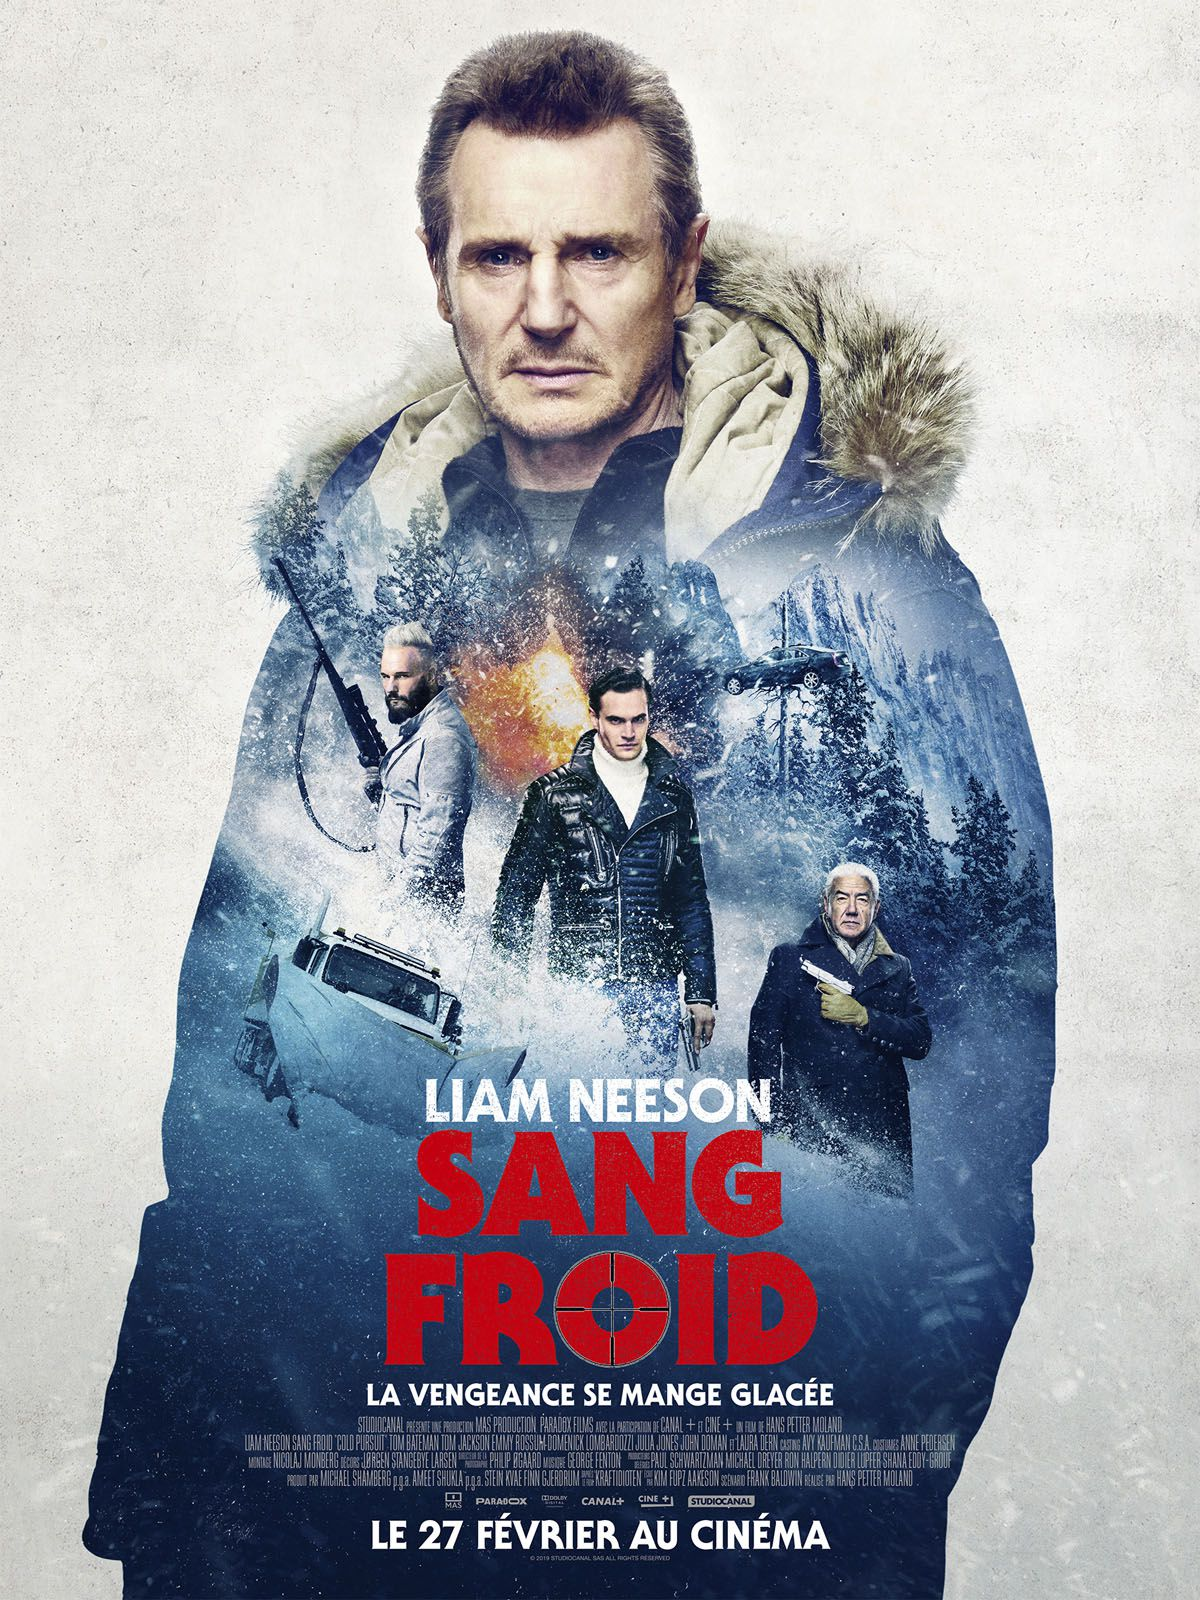 Sang froid - Film (2019)